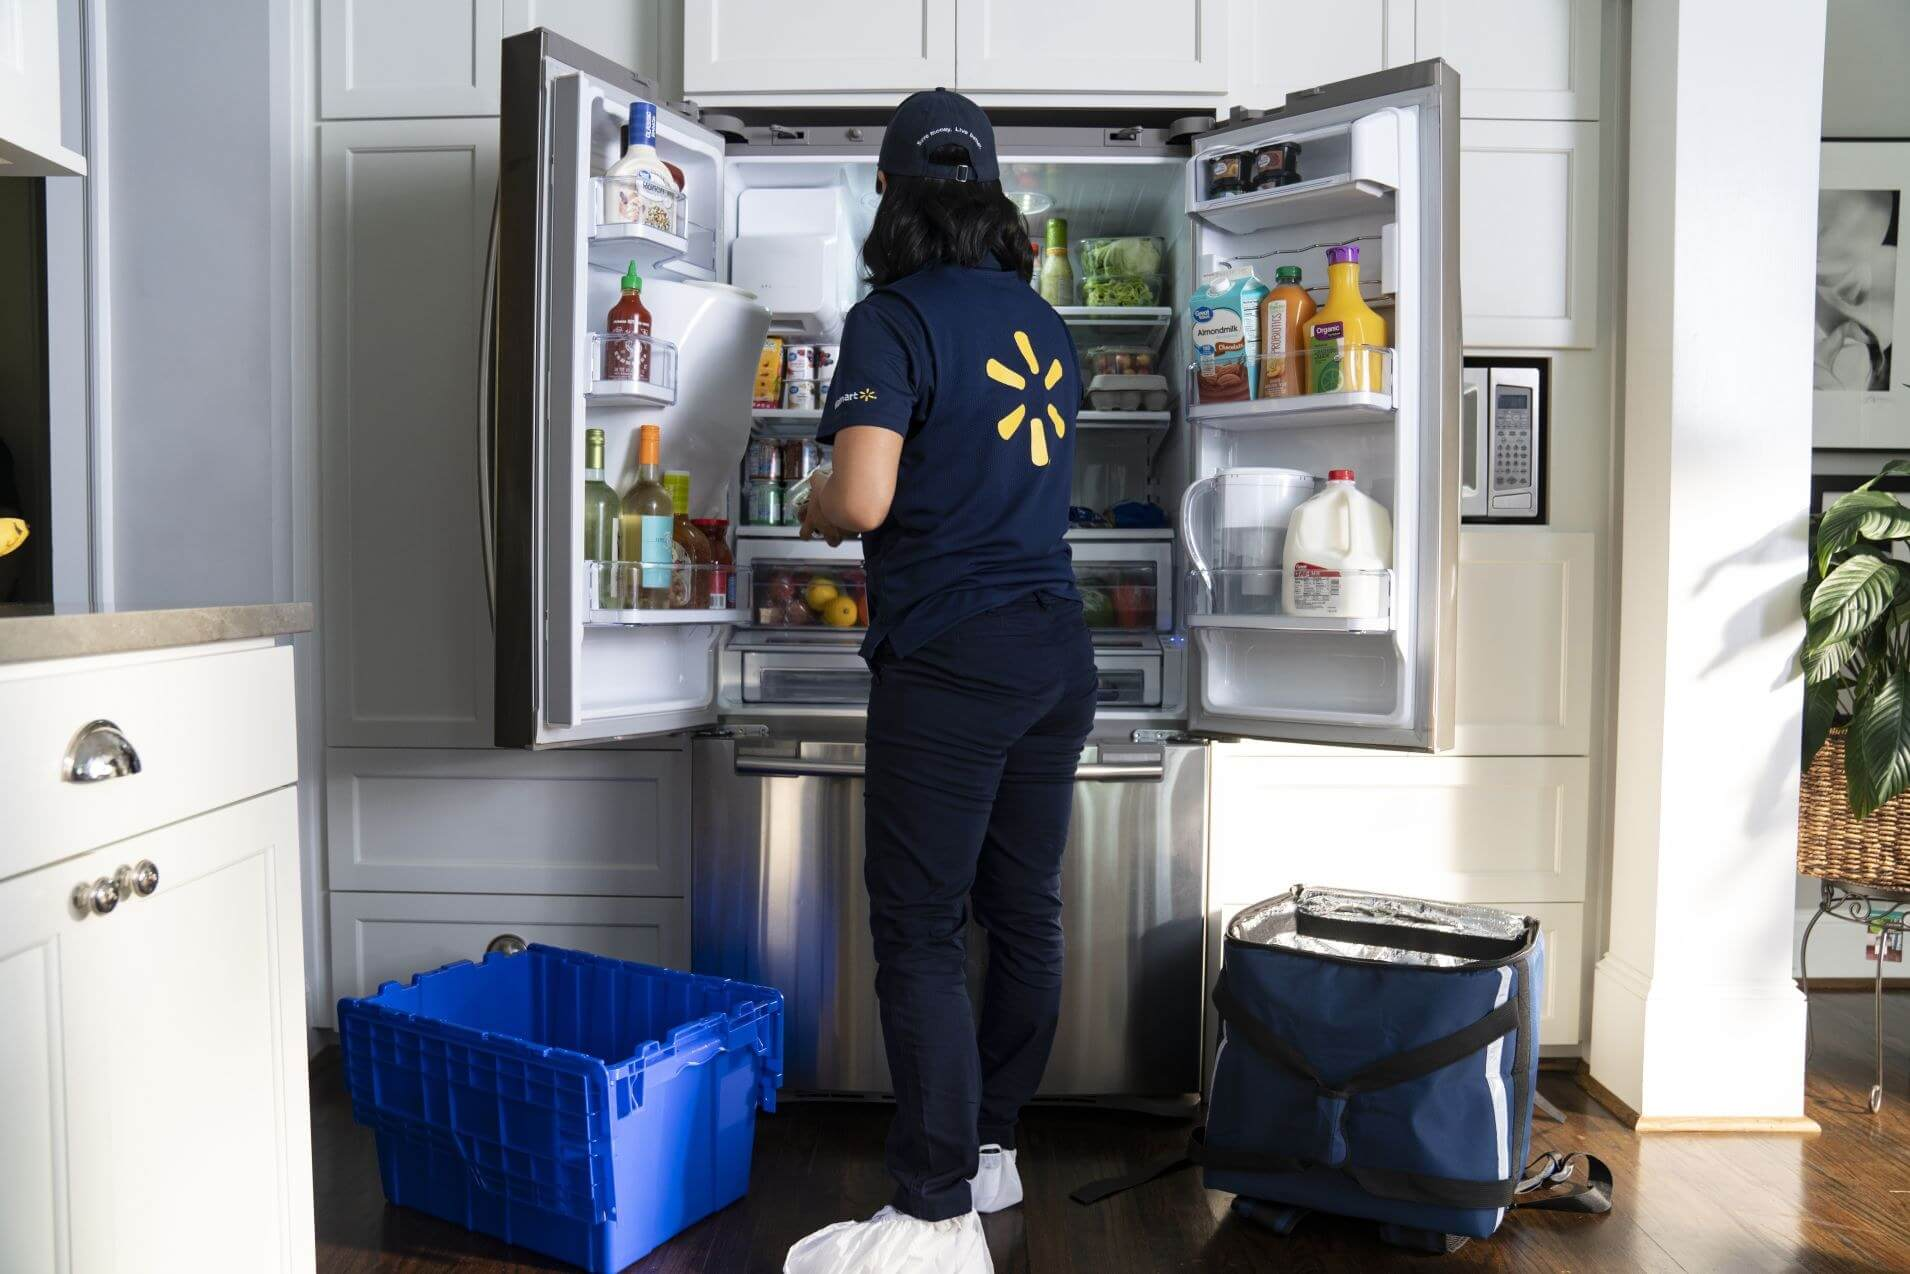 Walmart will stock your fridge with groceries while you're not home